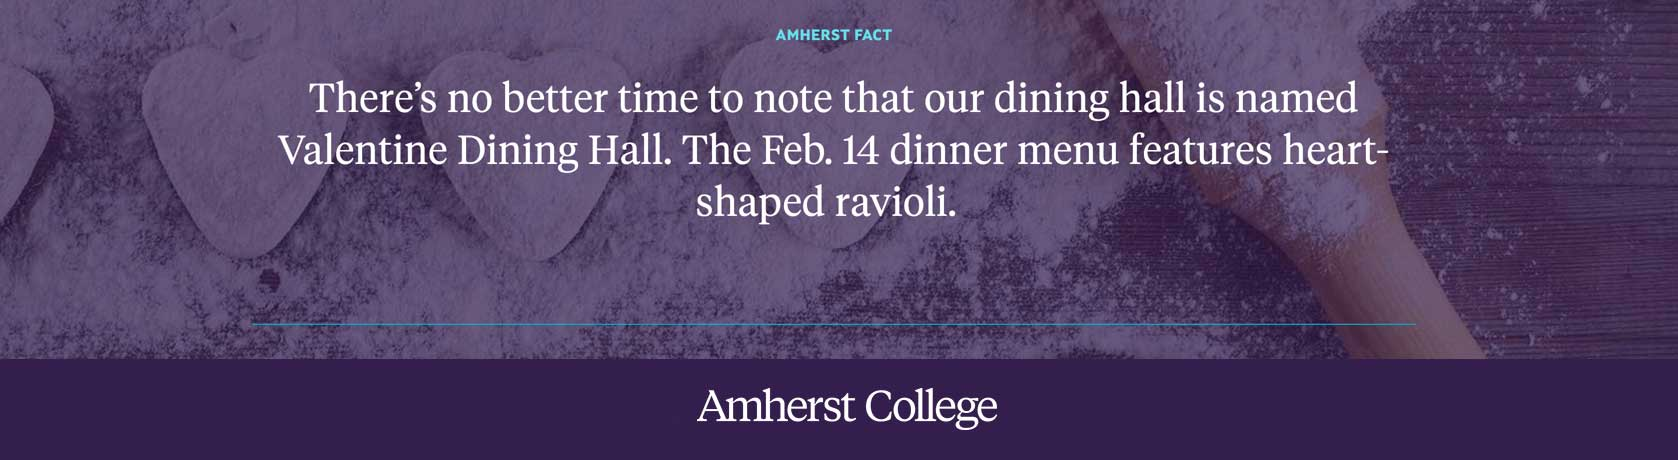 Amherst Fact: There's no better time to note that our dining hall is named Valentine Dining Hall.